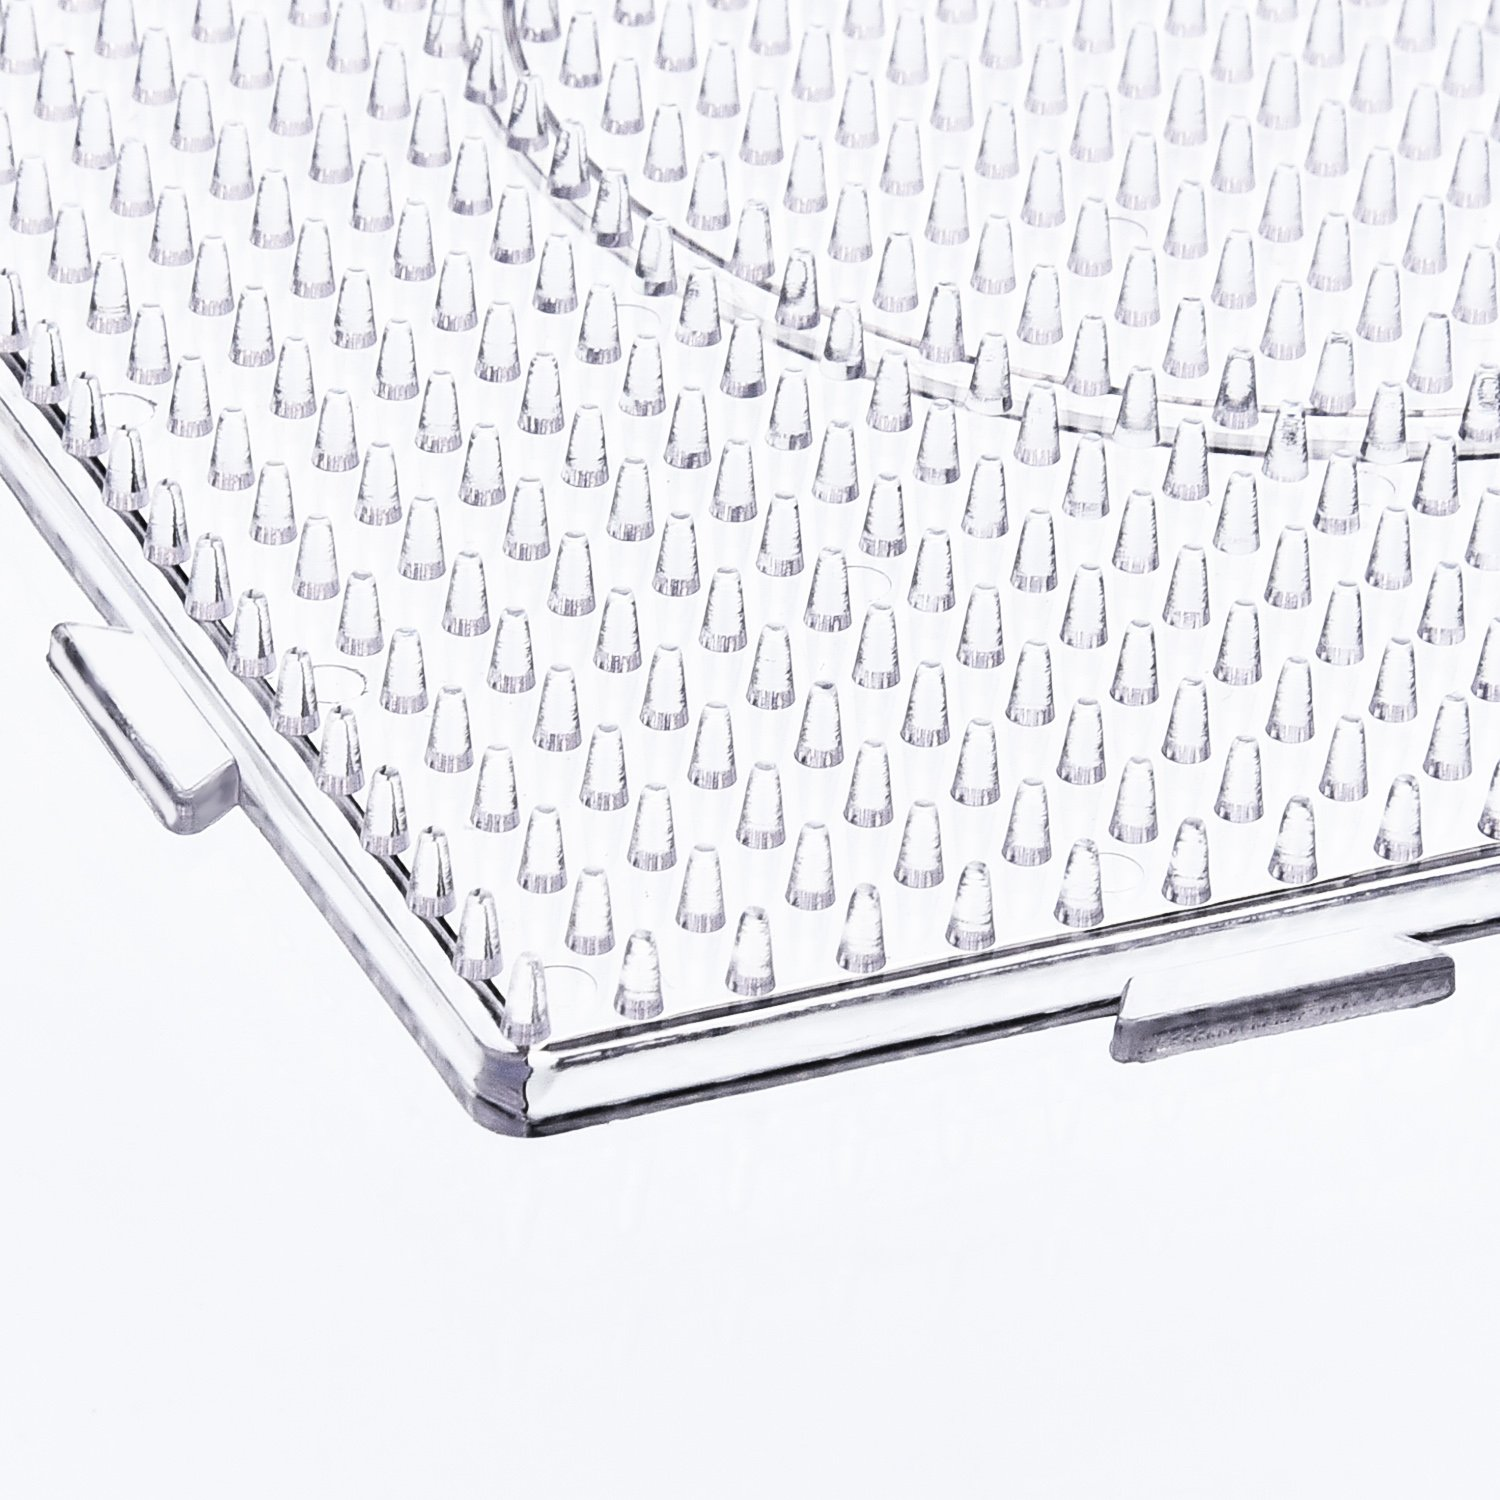 6 Pieces Maxdot 5 mm Large Square Fuse Beads Boards Clear Plastic Pegboards for Kids Craft Beads